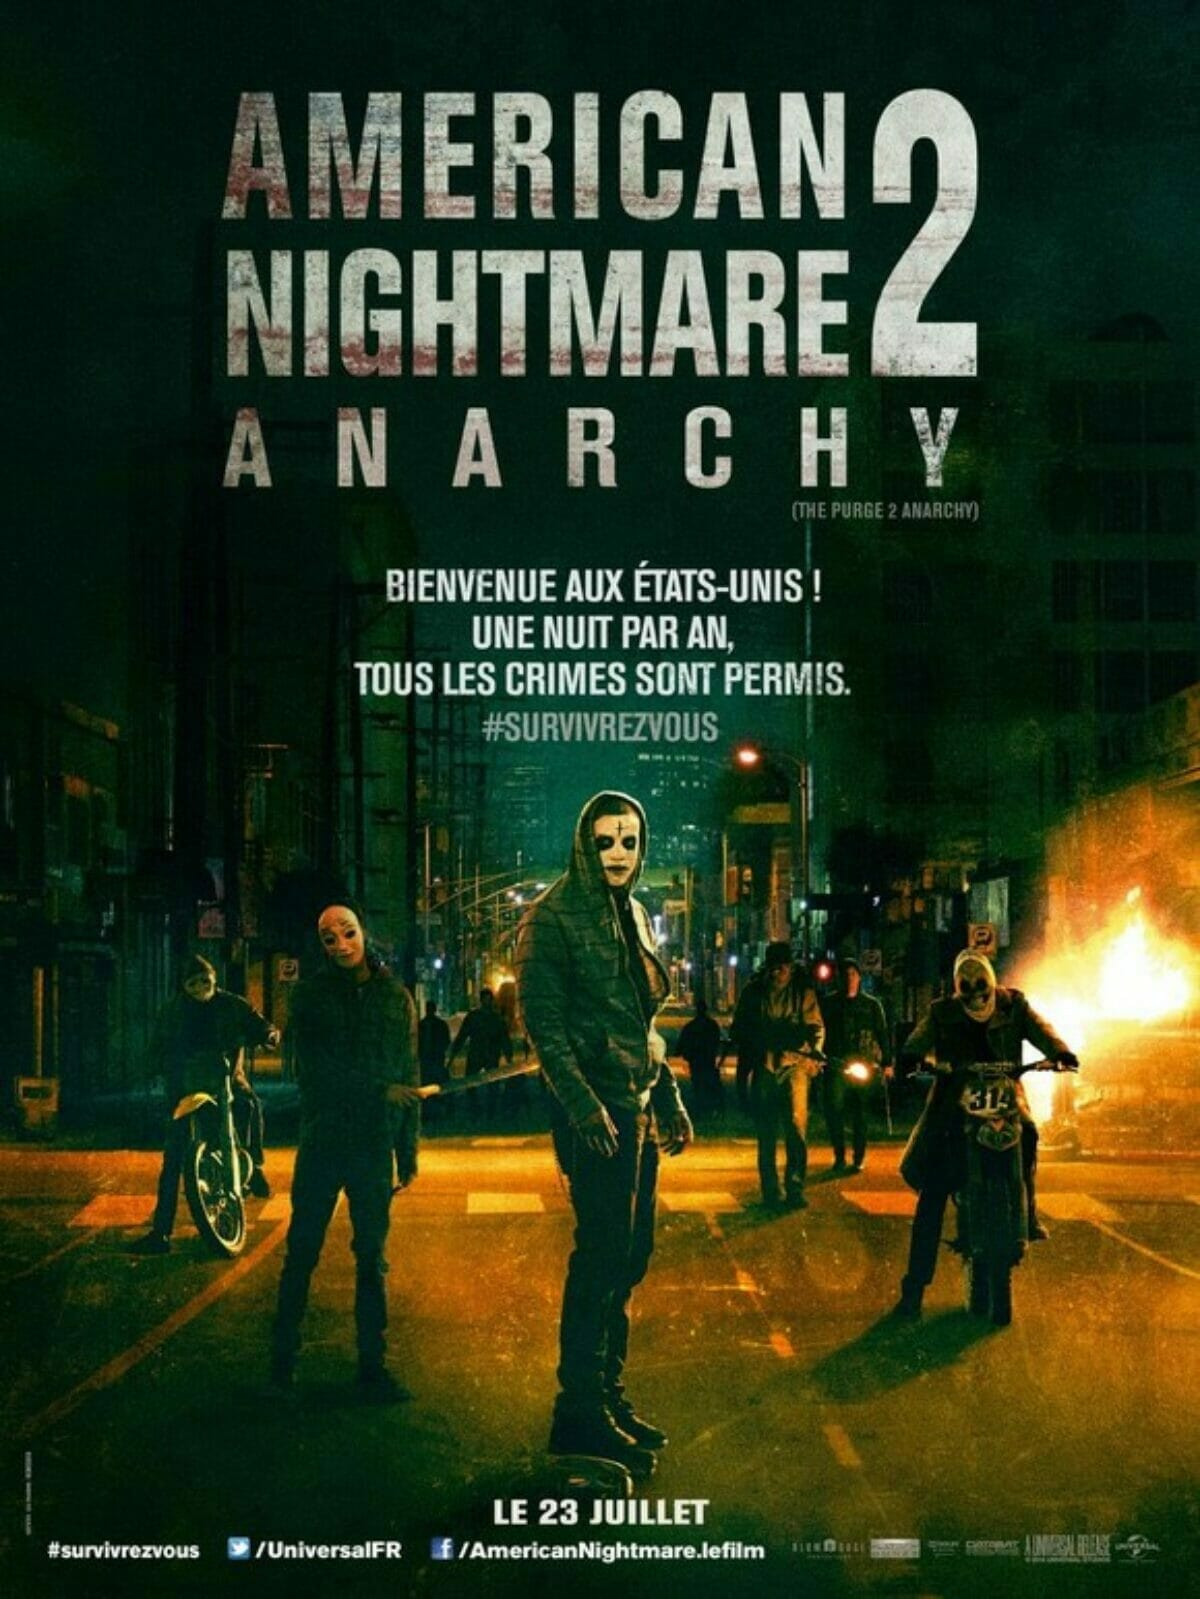 American-Nightmare2-The-Purge-Anarchy-affiche-france